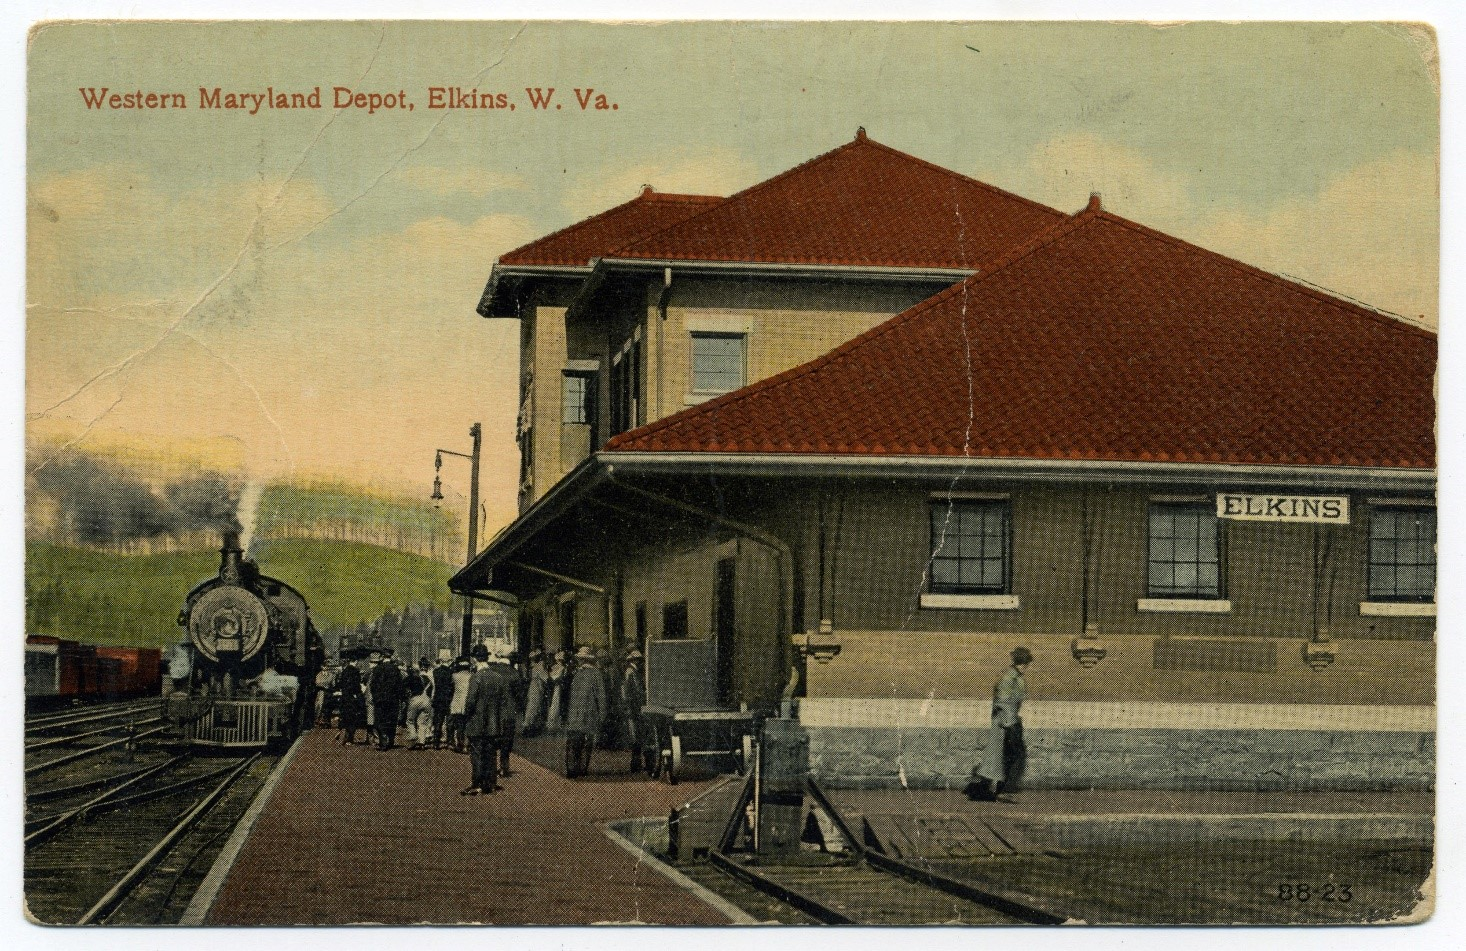 Train next to depot building